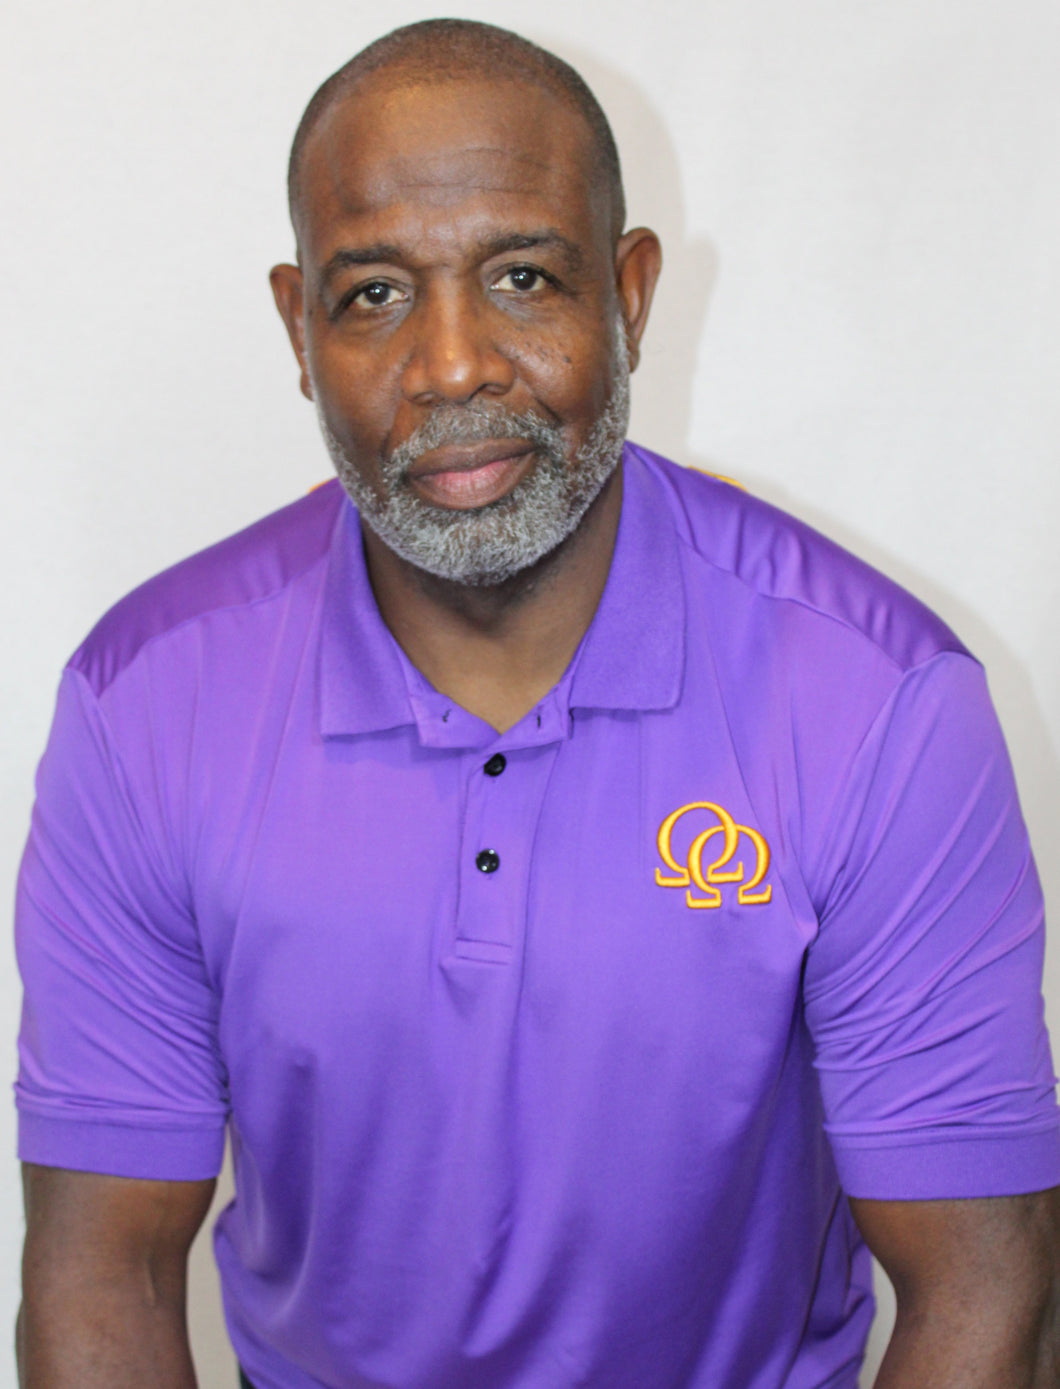 Polo Shirt  - Interlocking Gold Omegas on Purple (Athletic Fit)